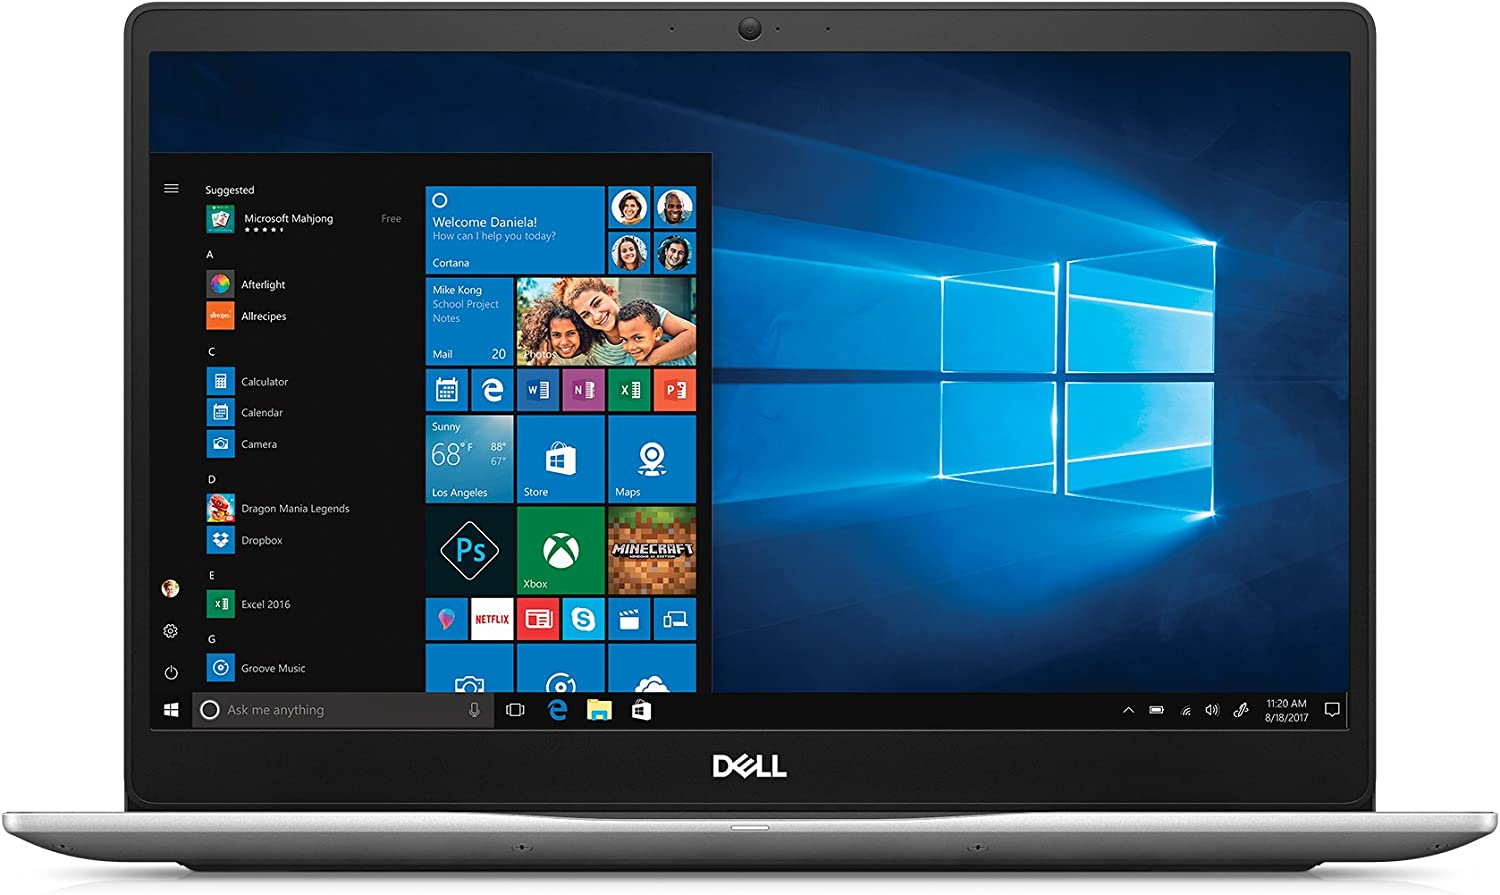 "Dell Inspiron 15 7570 Laptop - 15.6"" LED-Backlit Display - 8th Gen Intel Core i5 - 8GB Memory - 1TB Hard Drive with 8GB cache- 4GB Nvidia Geforce 940MX"